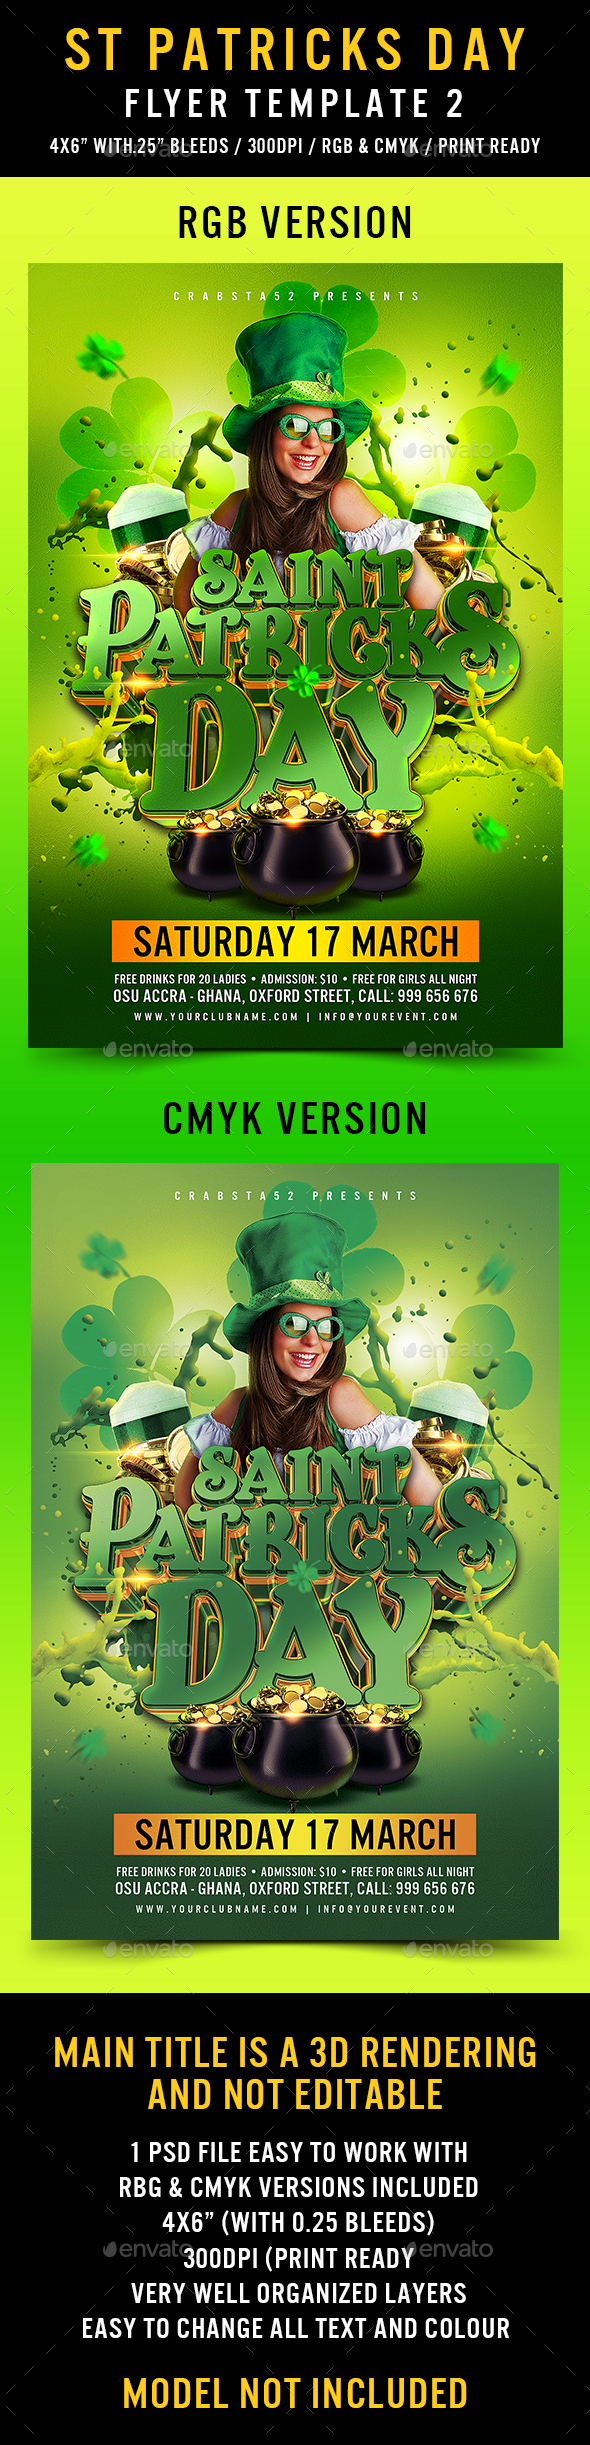 St Patricks Flyer Template 2 - Events Flyers